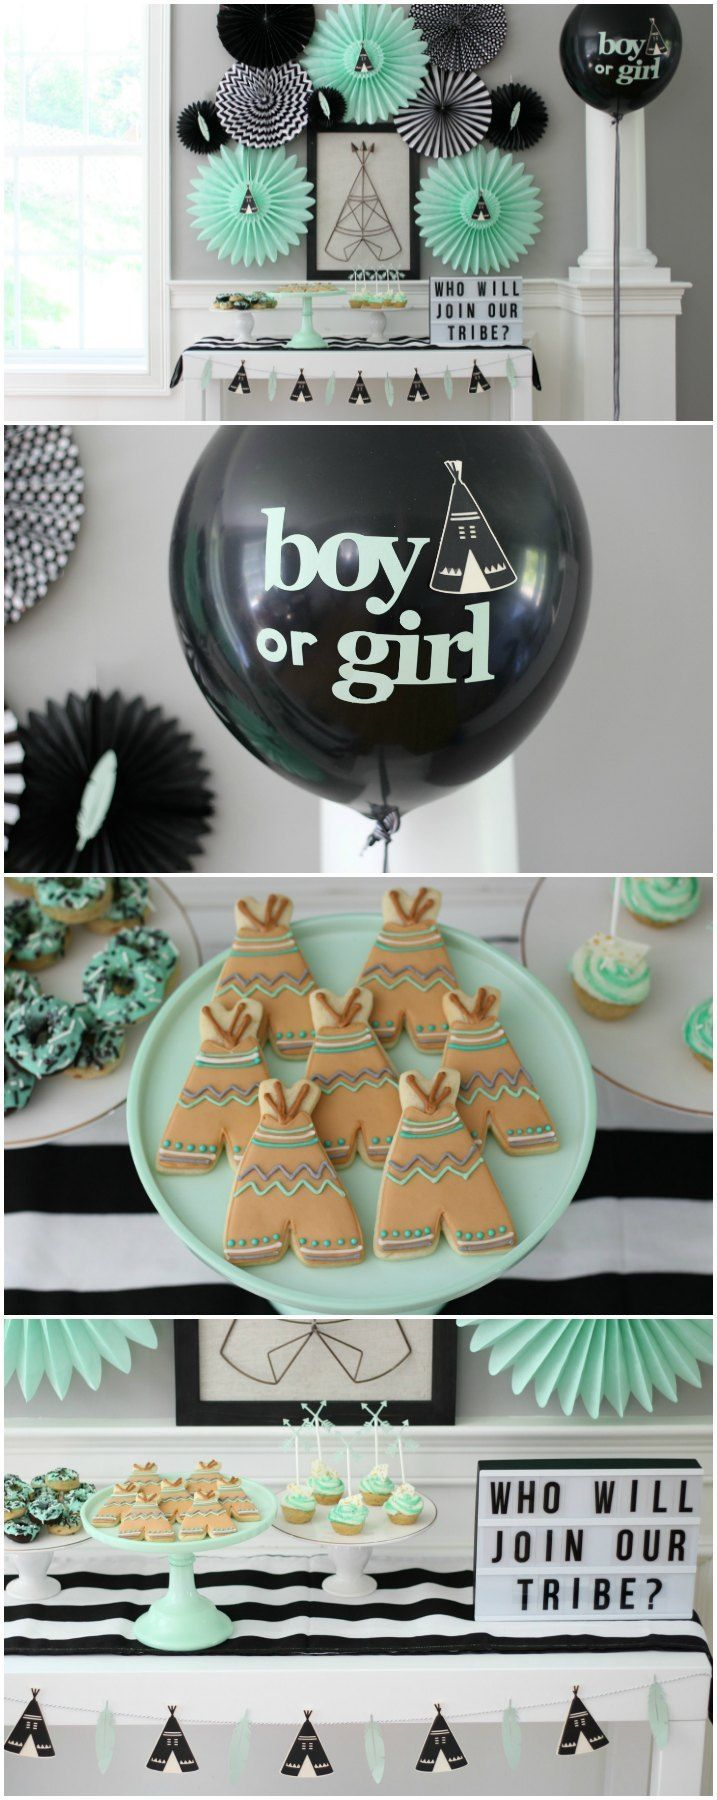 Who Will Join Our Tribe? Gender Reveal Party Ideas